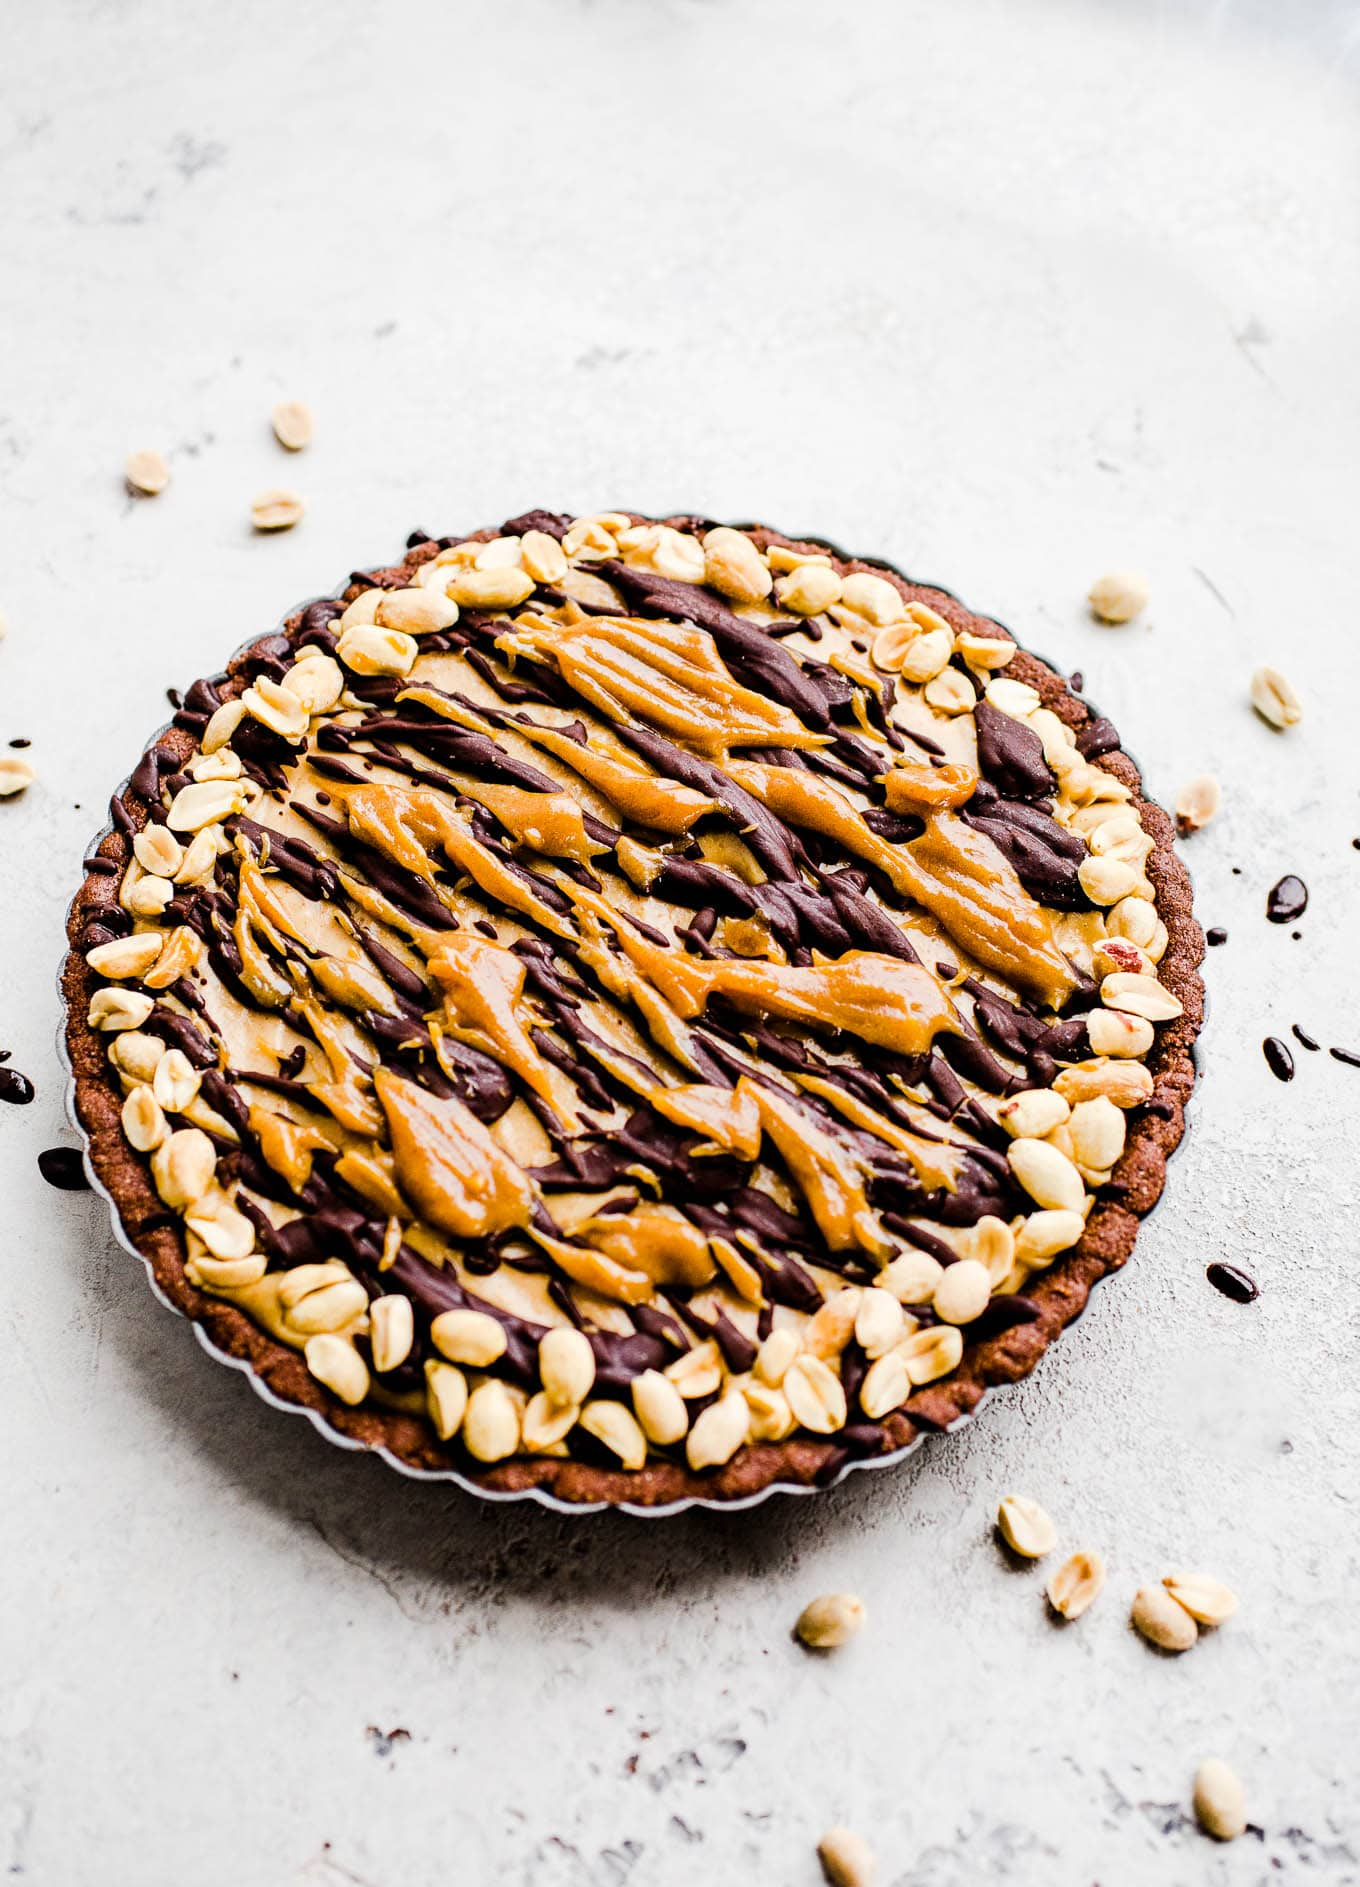 frozen pie with caramel and chocolate